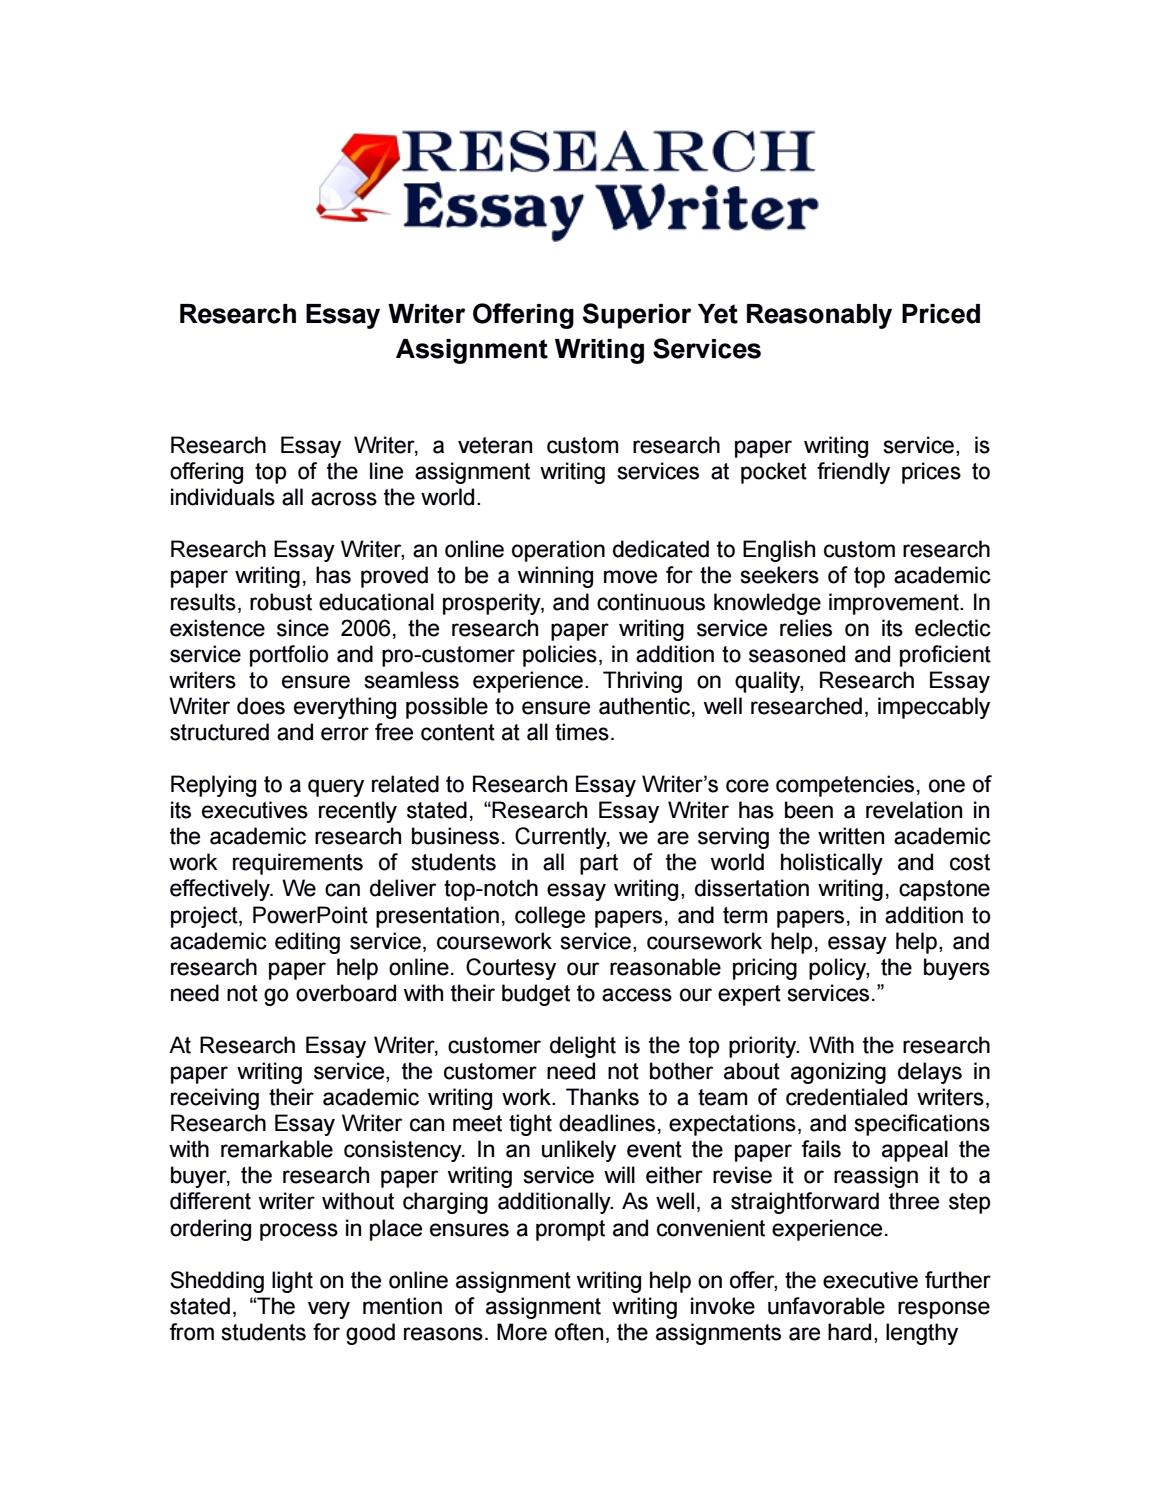 023 Page 1 Custom Research Paper Frightening Writing Services Term Service Full